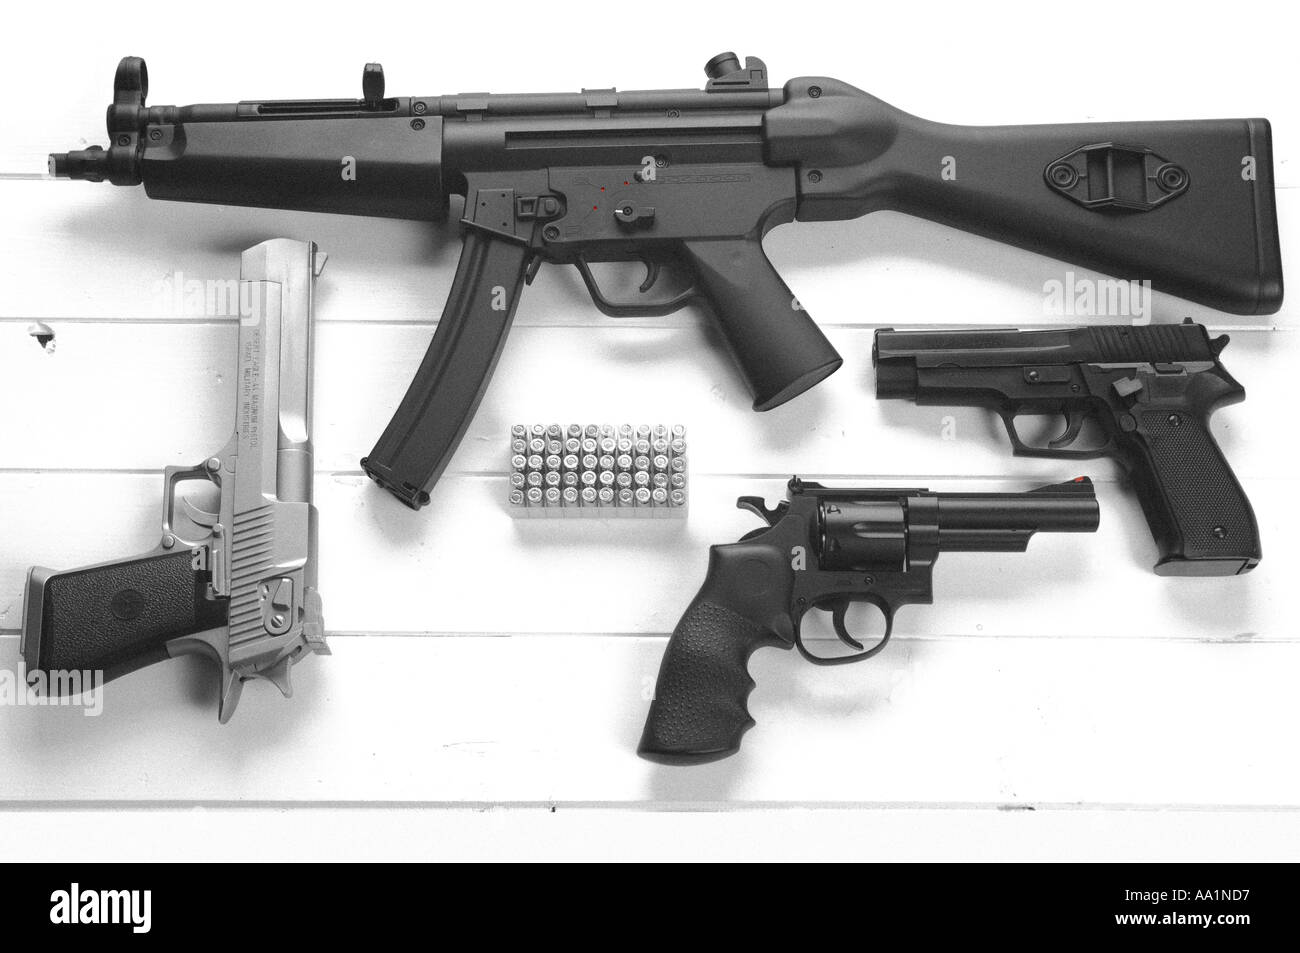 a collection of guns and ammunition including a heckler and koch MP5 desert eagle glock and 357 magnum pistols - Stock Image